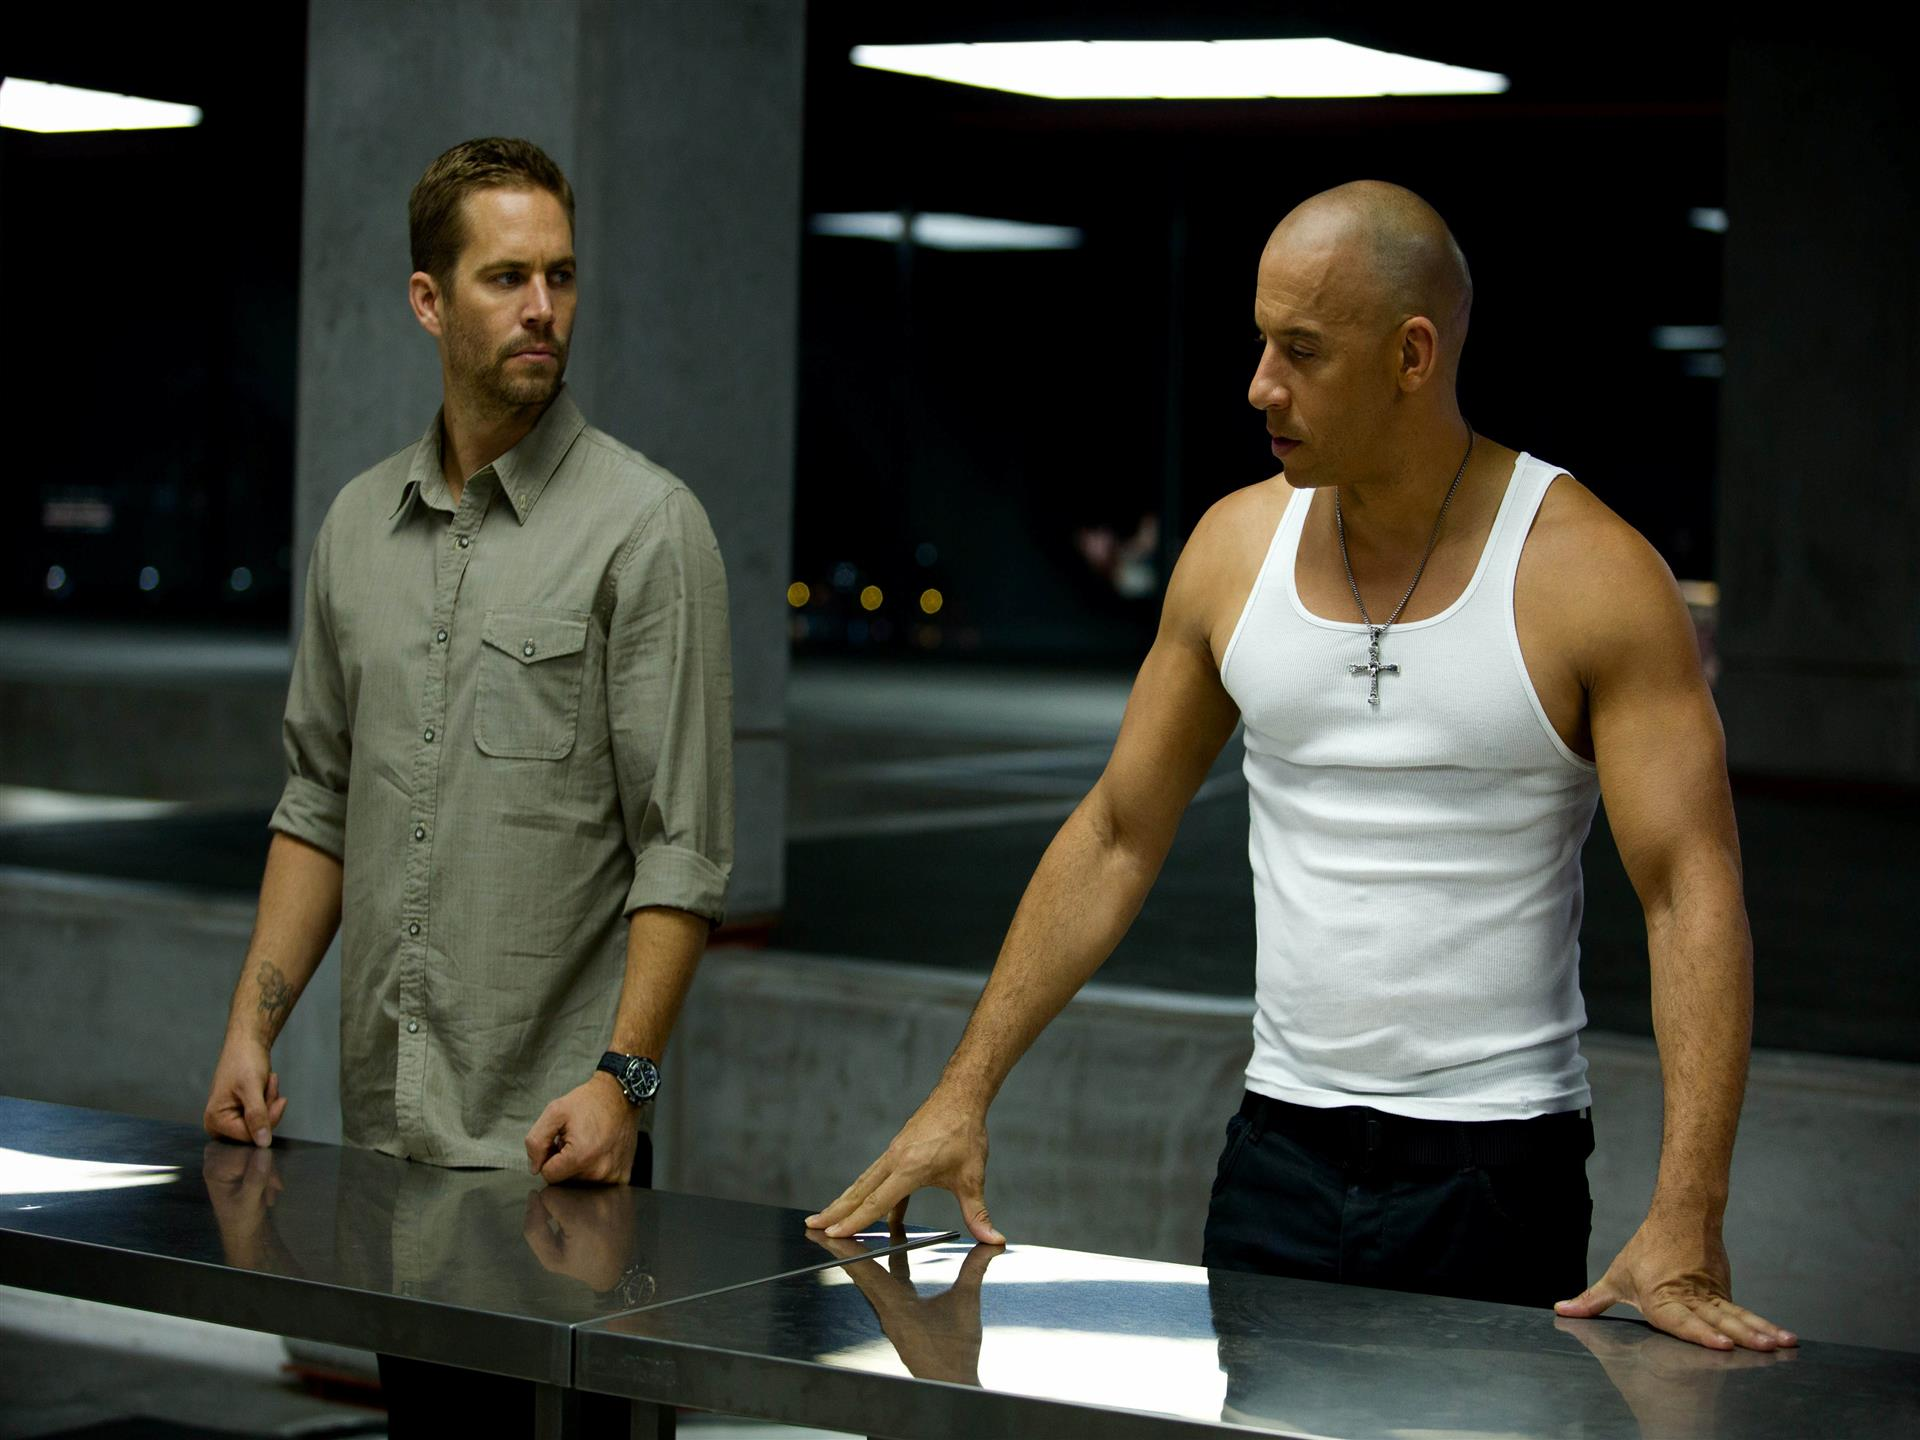 Vin Diesel Wallpapers for iPhone Mobiles, Android